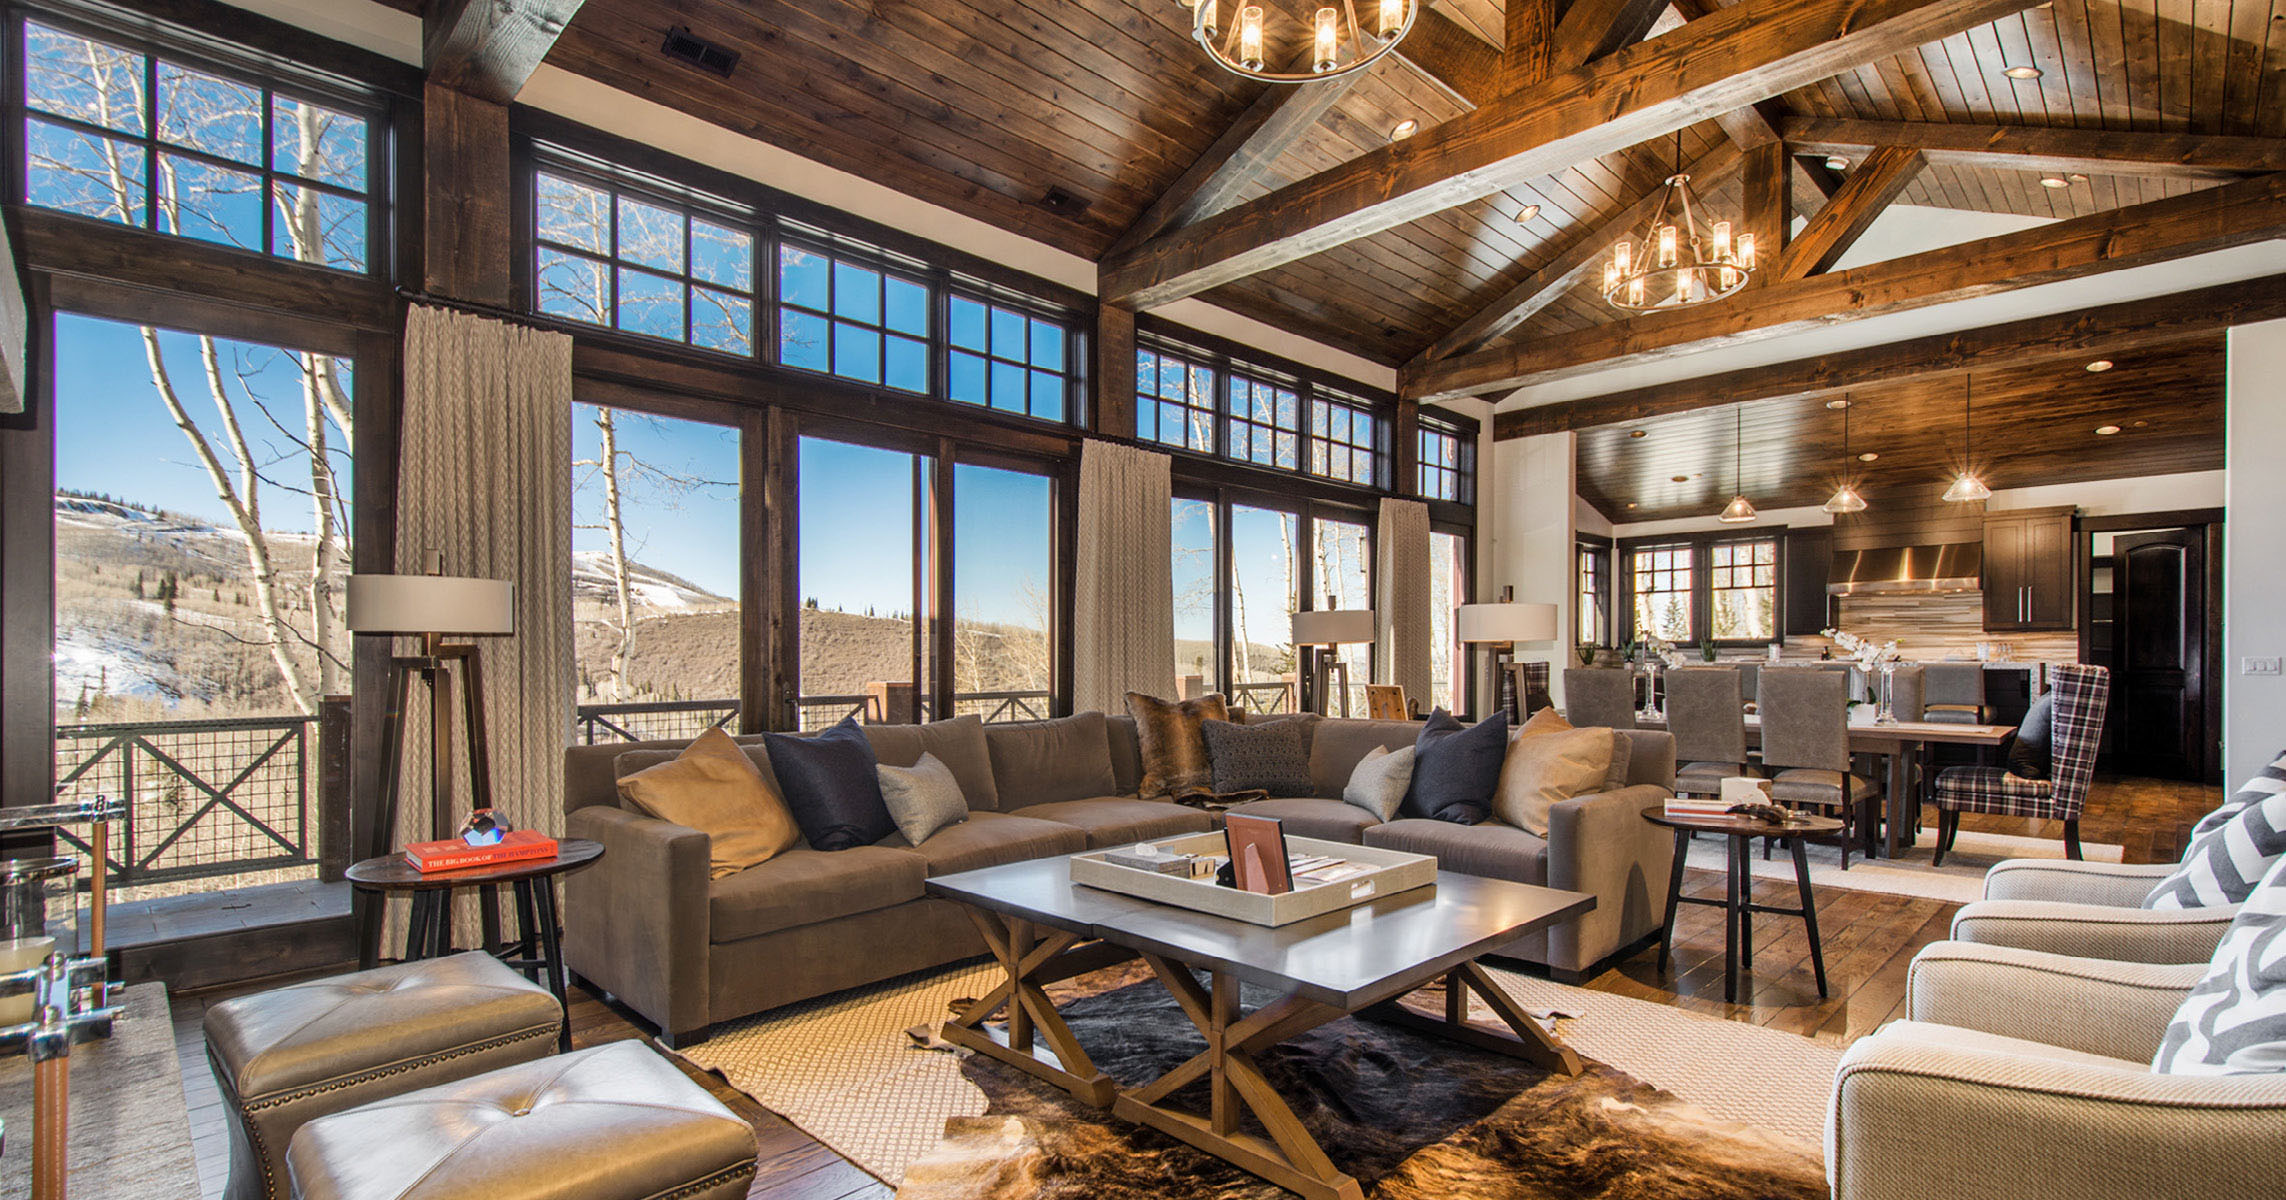 Nestled In The Alpine Splendor Of Empire Pass, The Belles Is Appropriately  Named; This Village Of 17 Homes Truly Is The Most Beautiful In The Area.